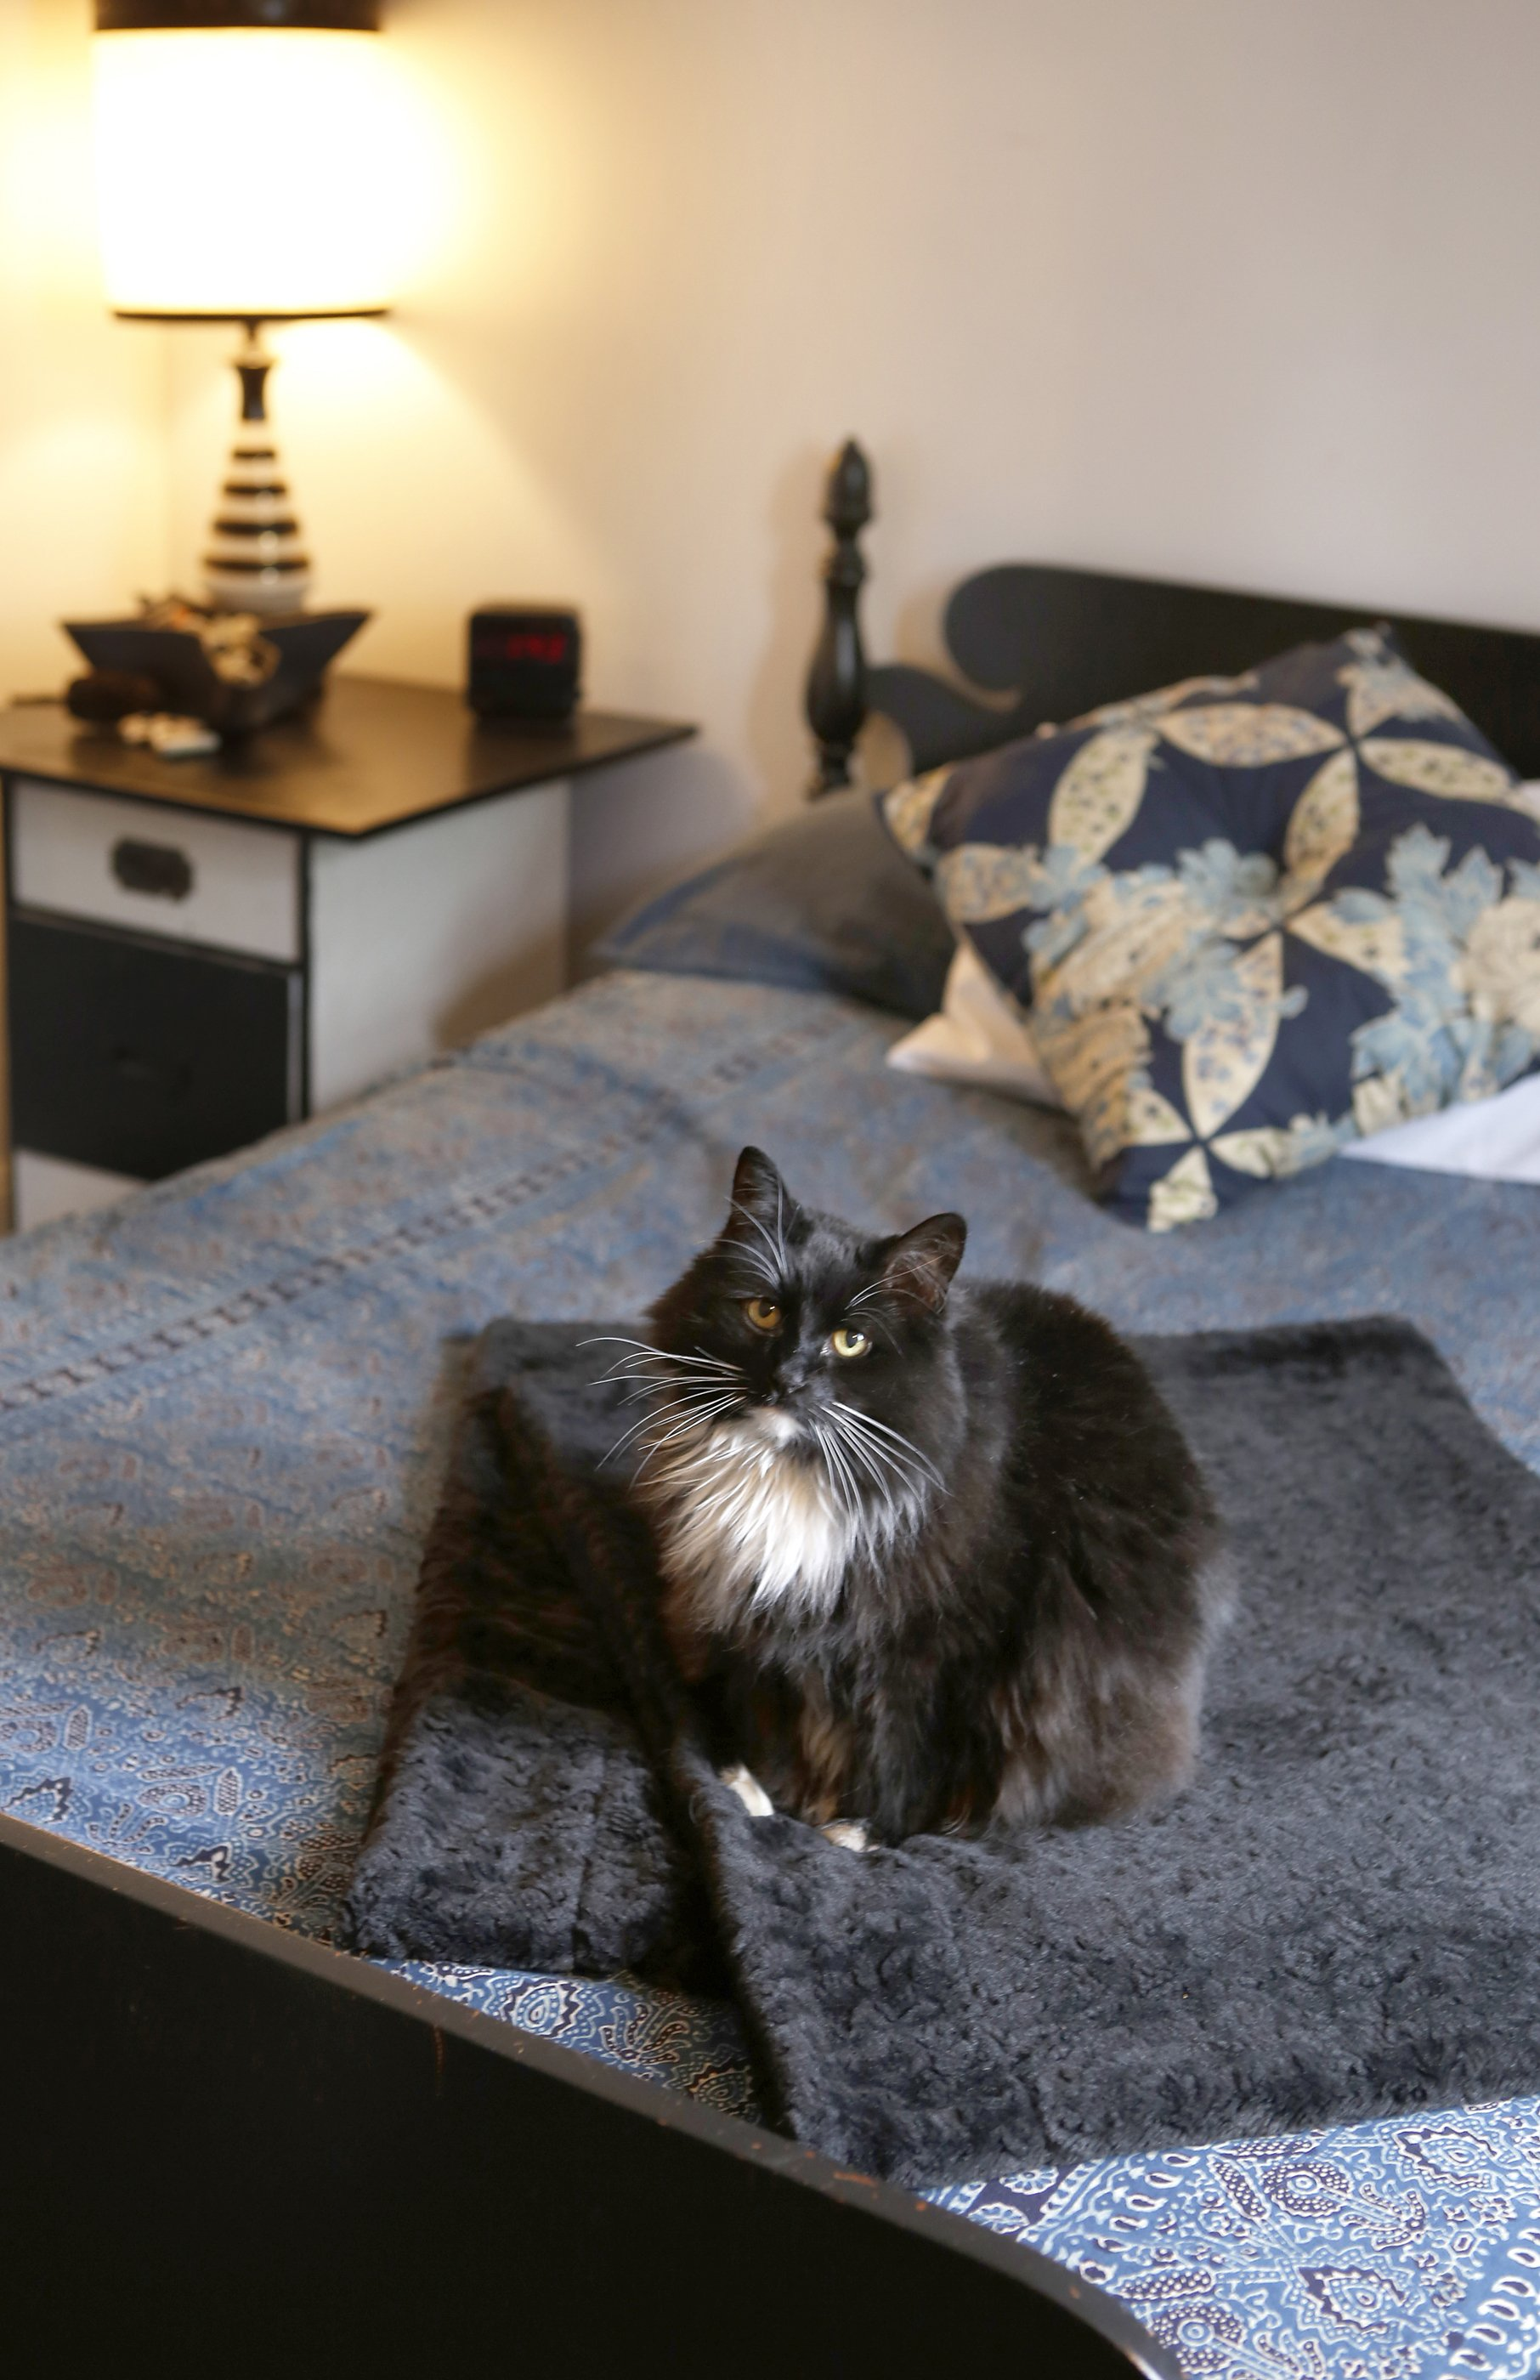 how to stylishly cat-proof your home | apartment therapy